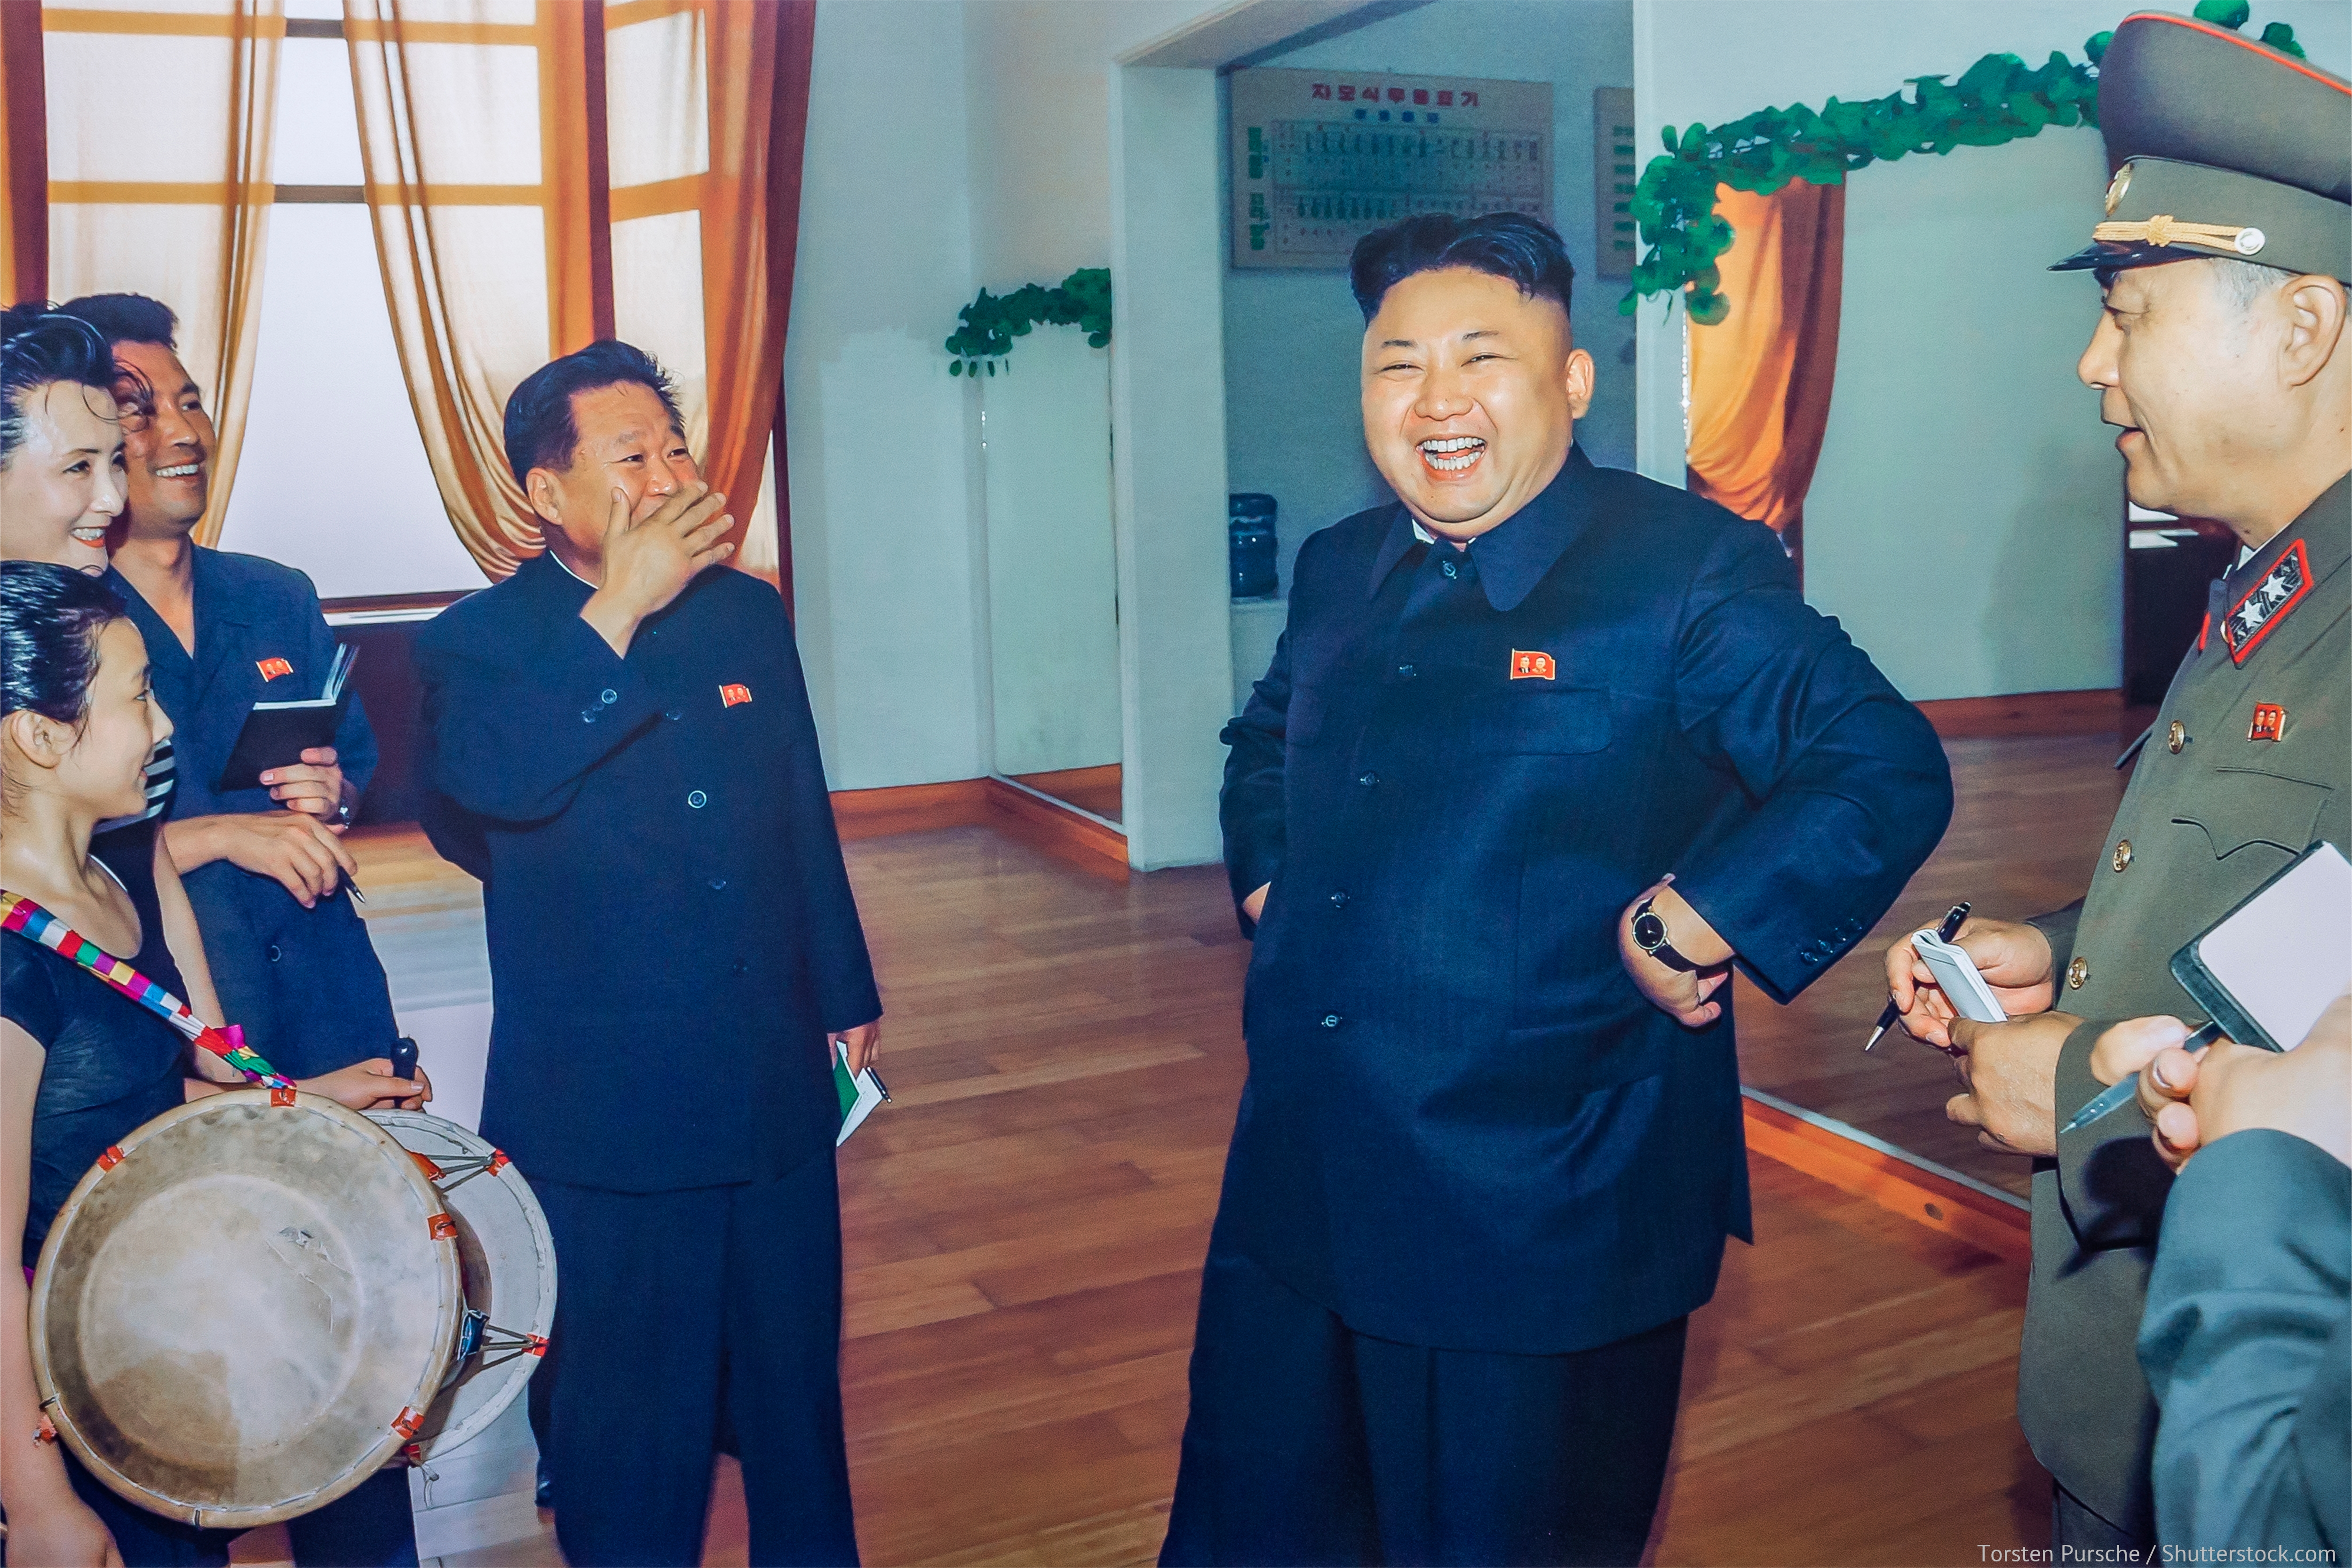 North Korea hosts free and fair elections